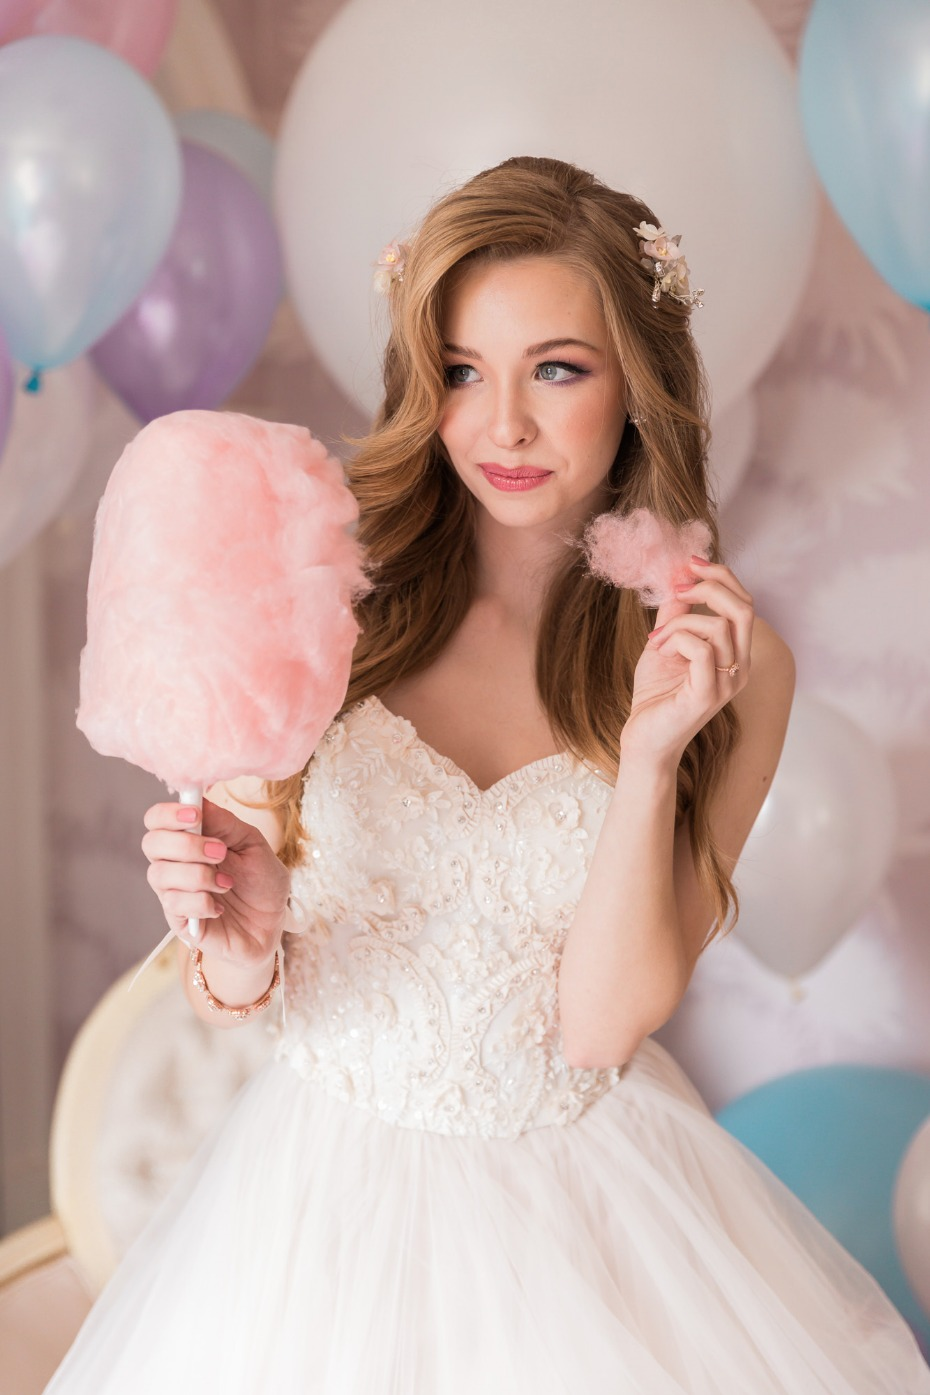 Cotton candy for the bride